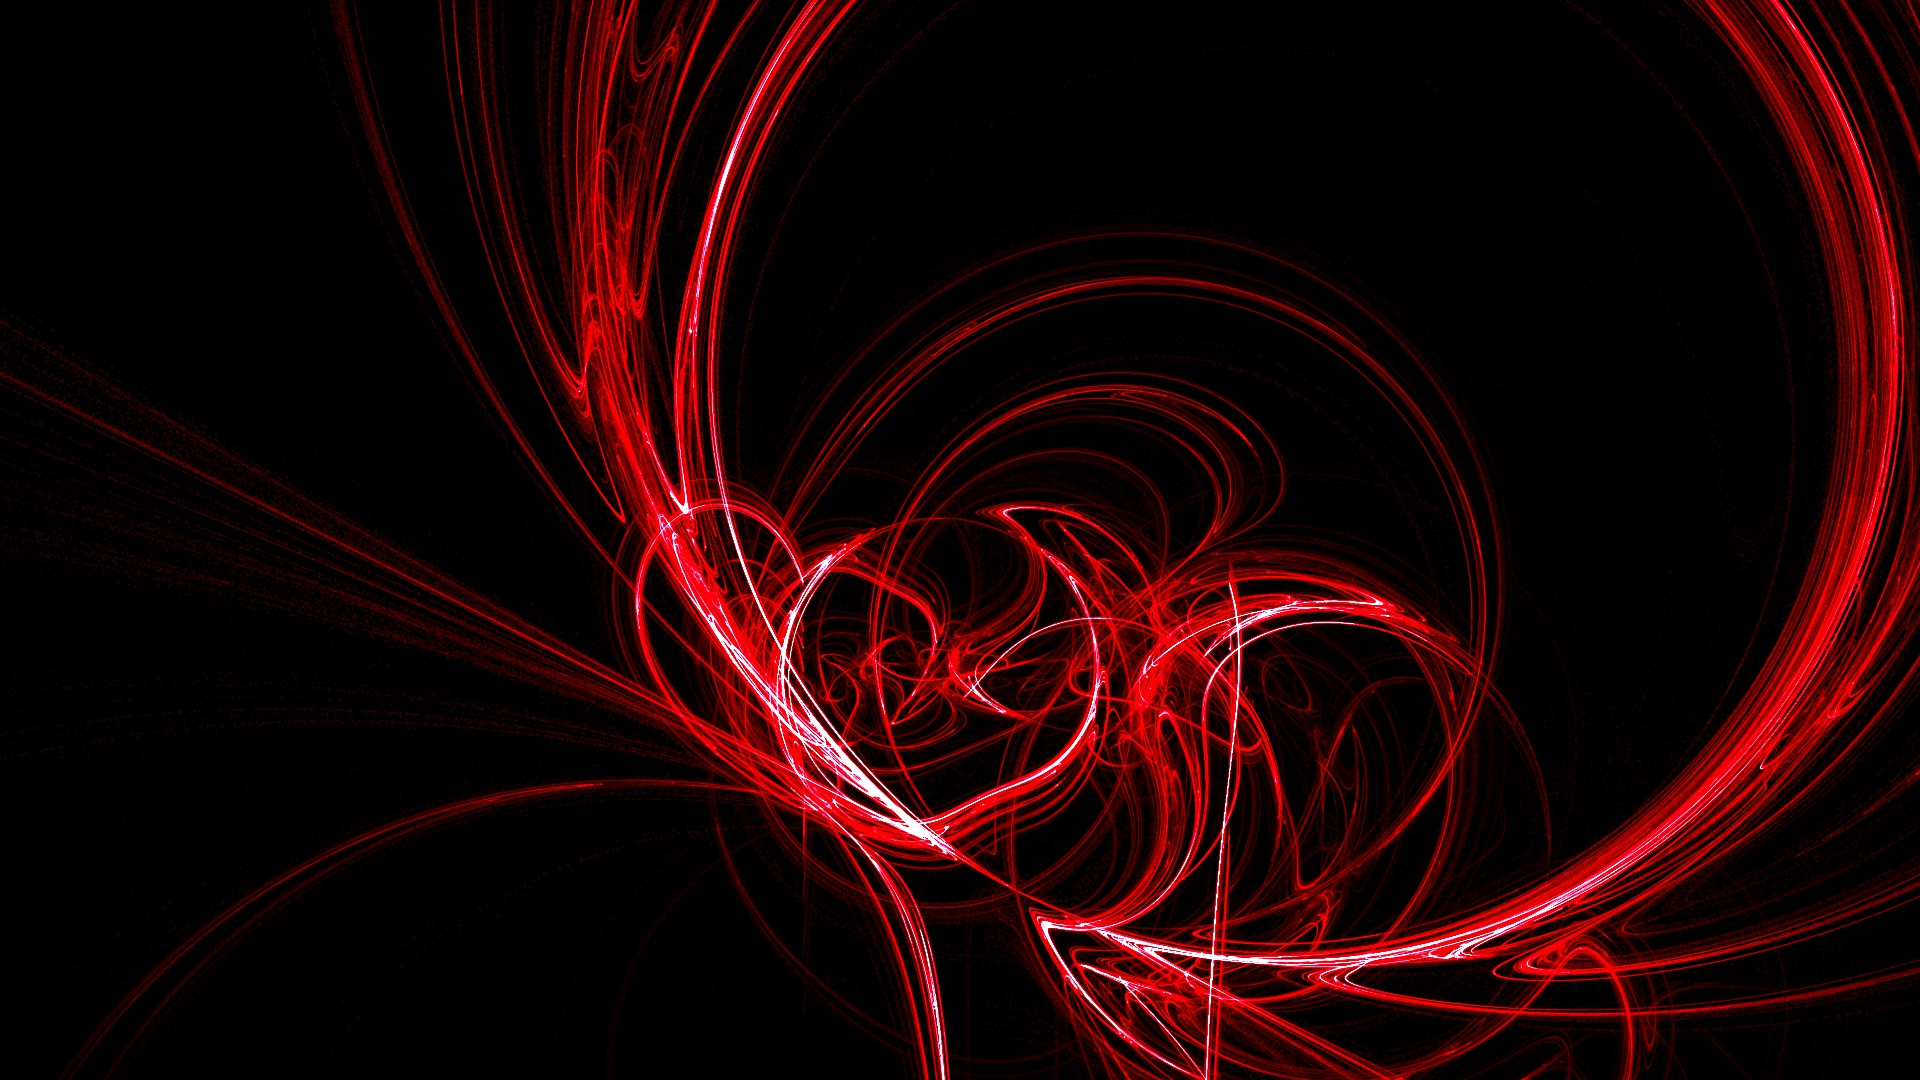 Red Abstract wallpaper - 689020